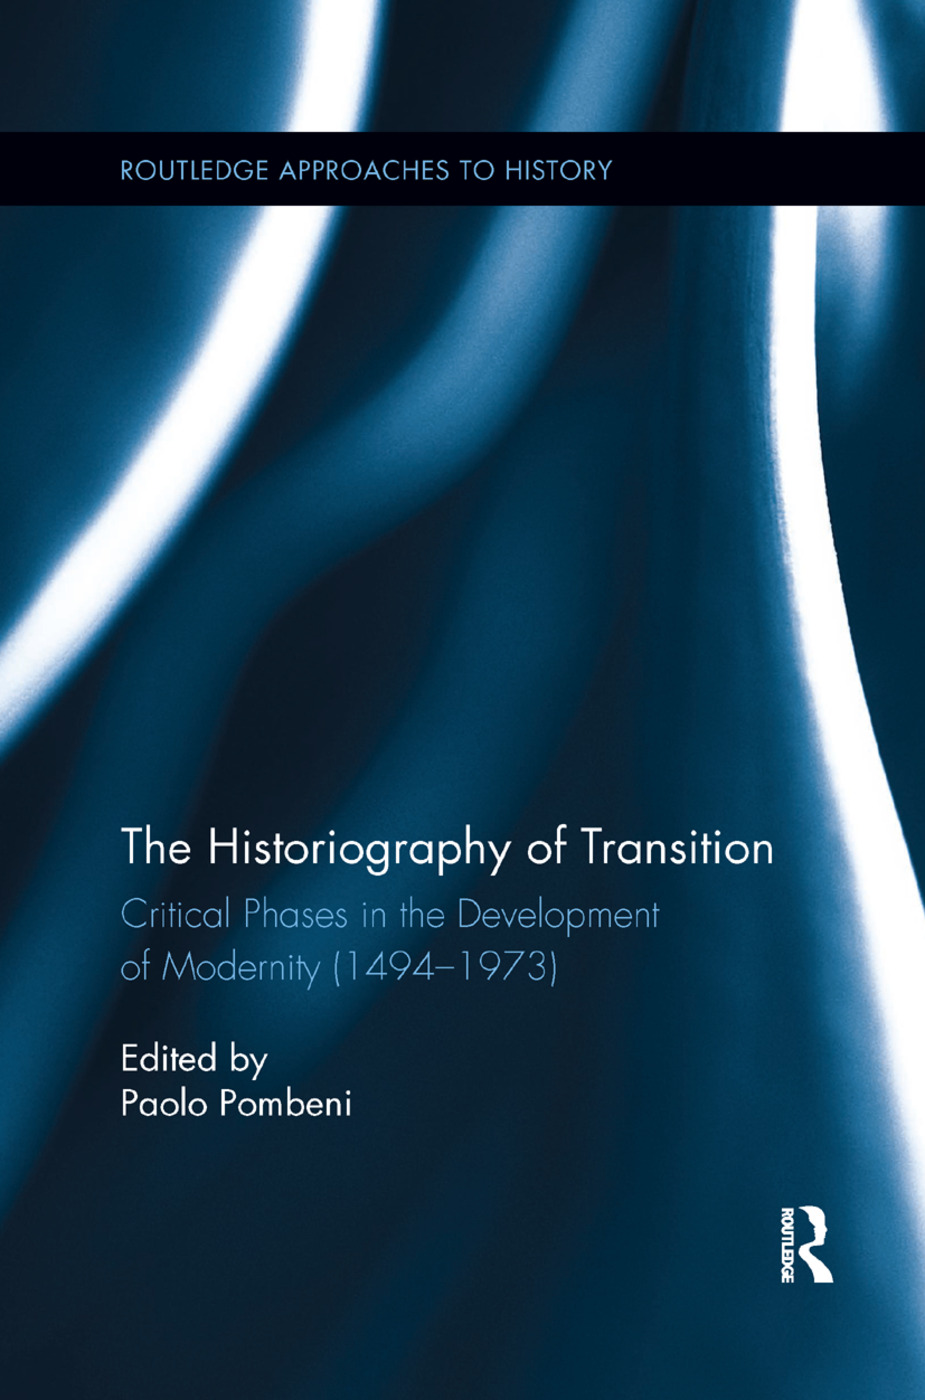 The Historiography of Transition: Critical Phases in the Development of Modernity (1494-1973) book cover